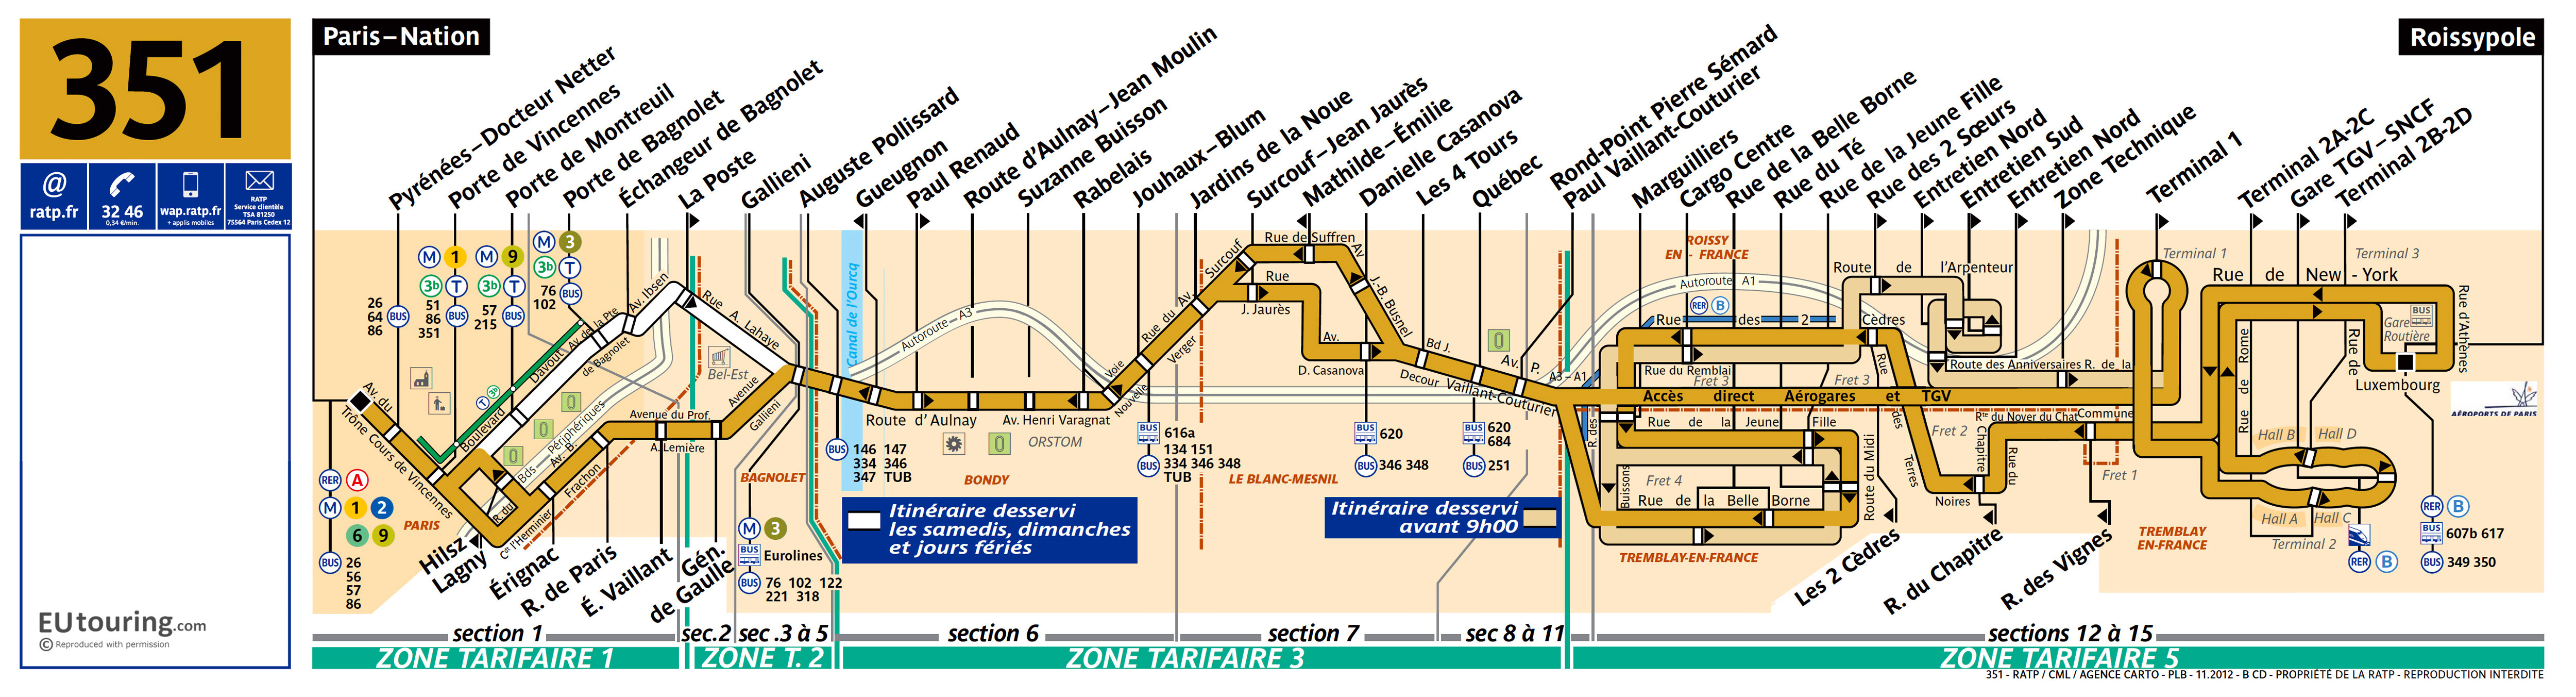 Public transport shuttle services for Charles de Gaulle airport in on